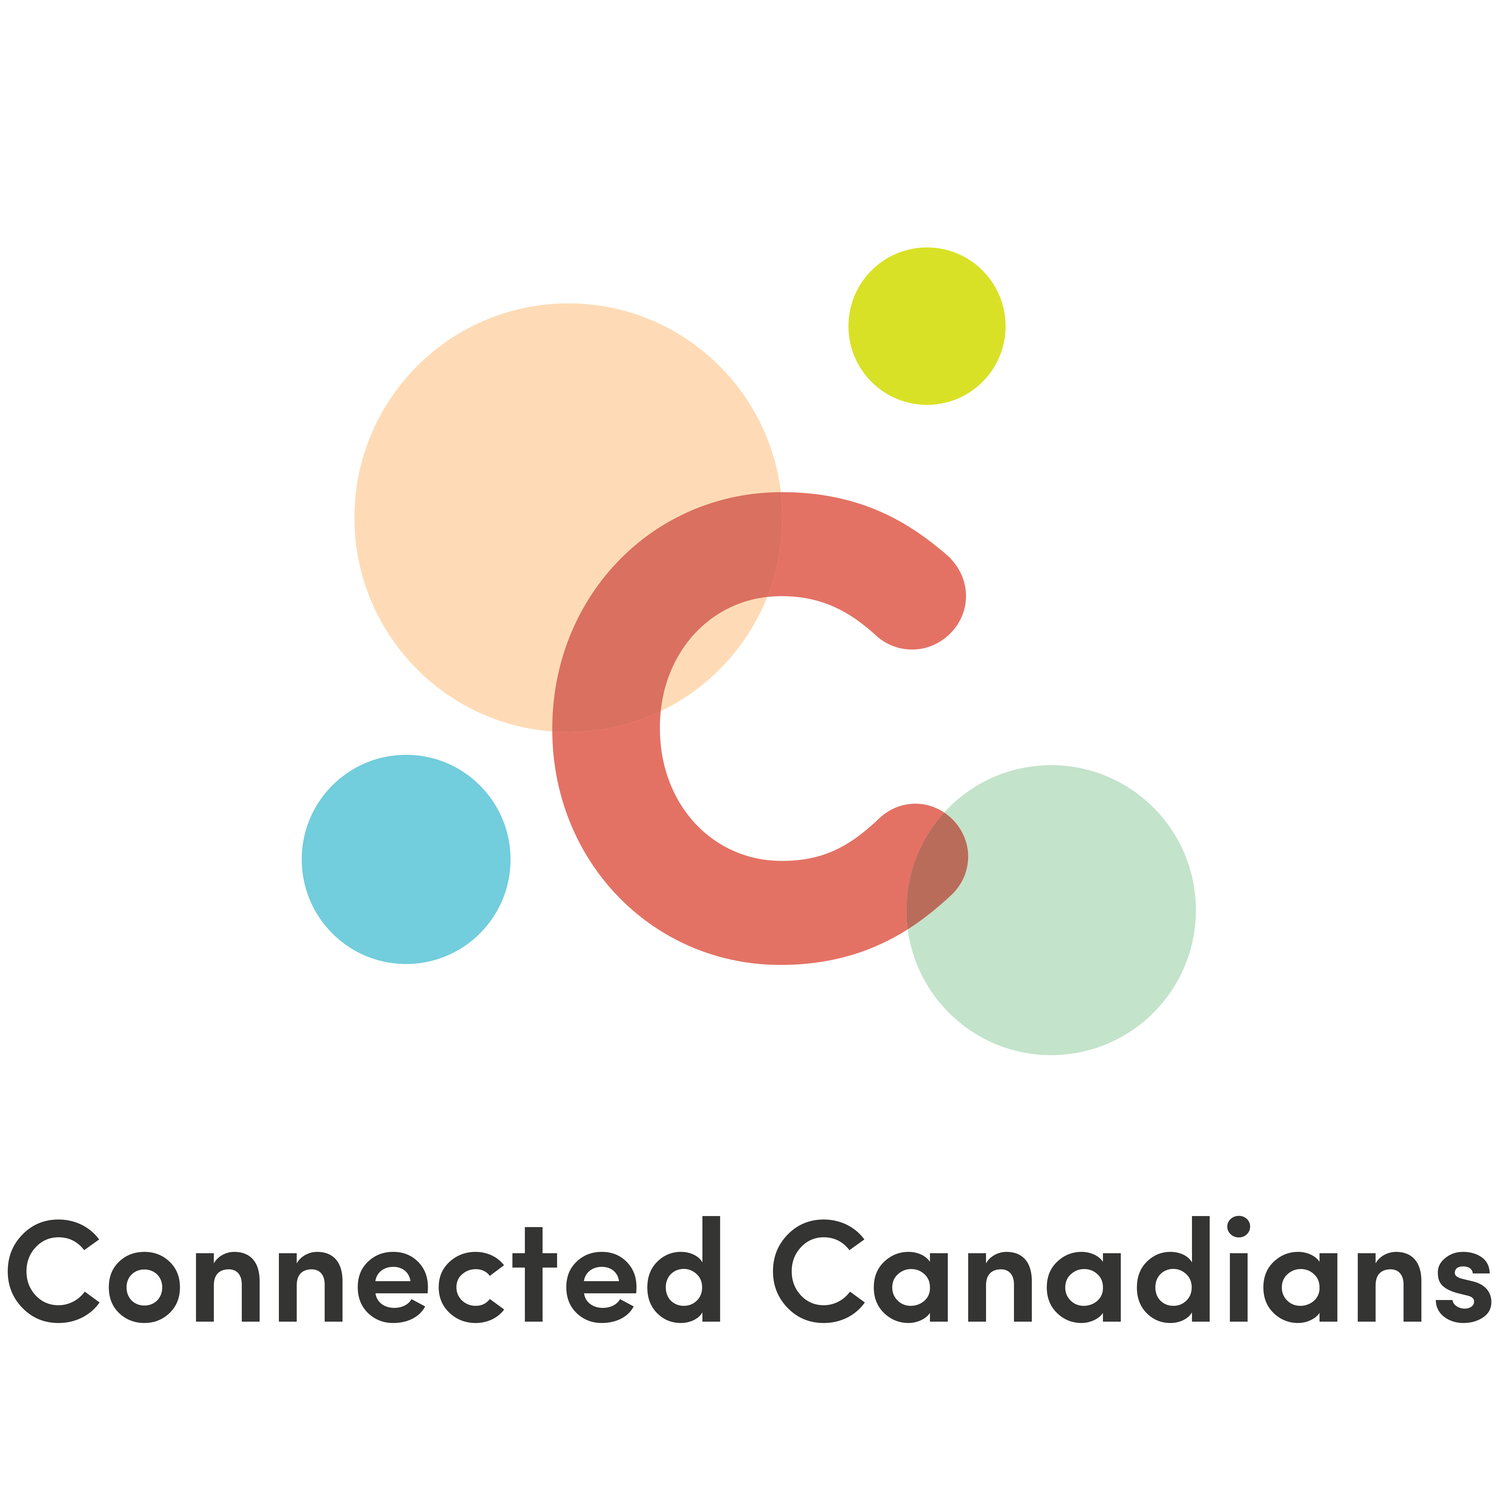 Connected Canadians